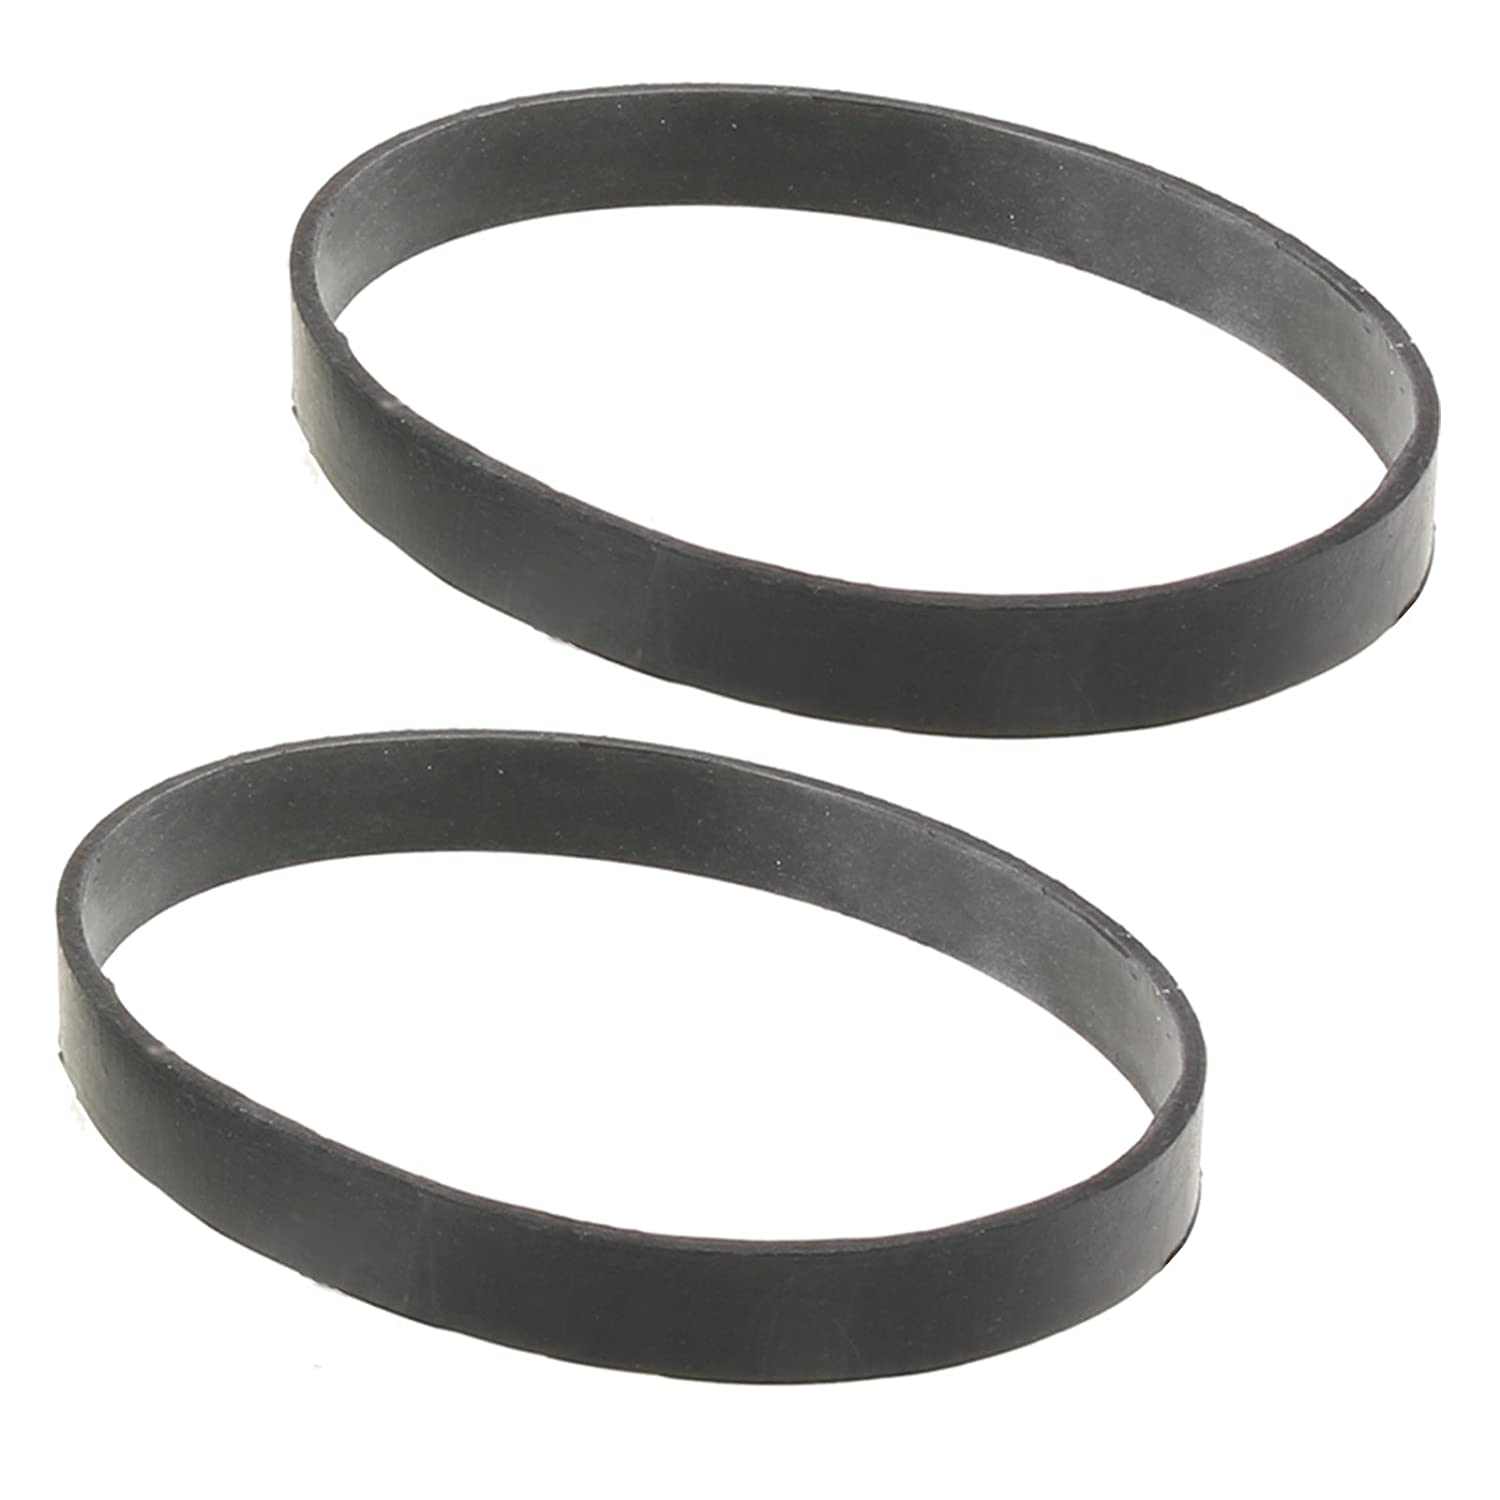 SPARES2GO Rubber Drive Belt for Vax Dynamo Power Reach Pet Series Upright Vacuum Cleaner (Pack of 2 Belts)